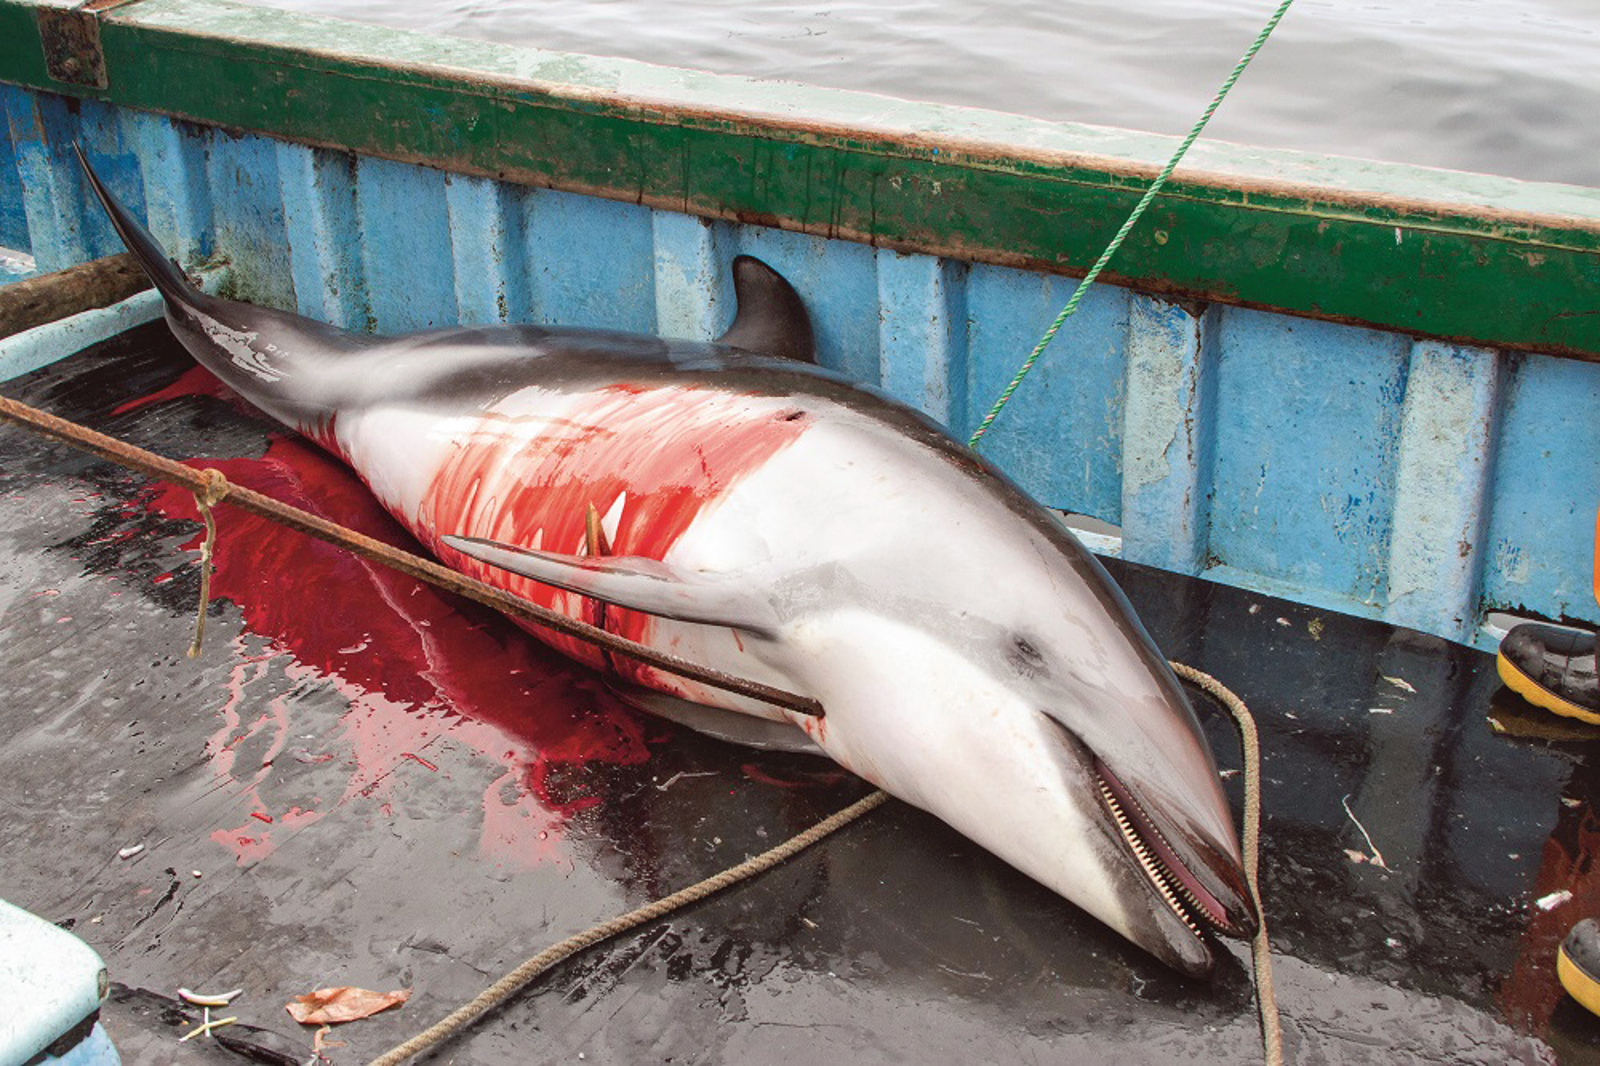 Dolphins in Peru are Being Killed for Shark Bait. Here's What You Can Do to Stop it!